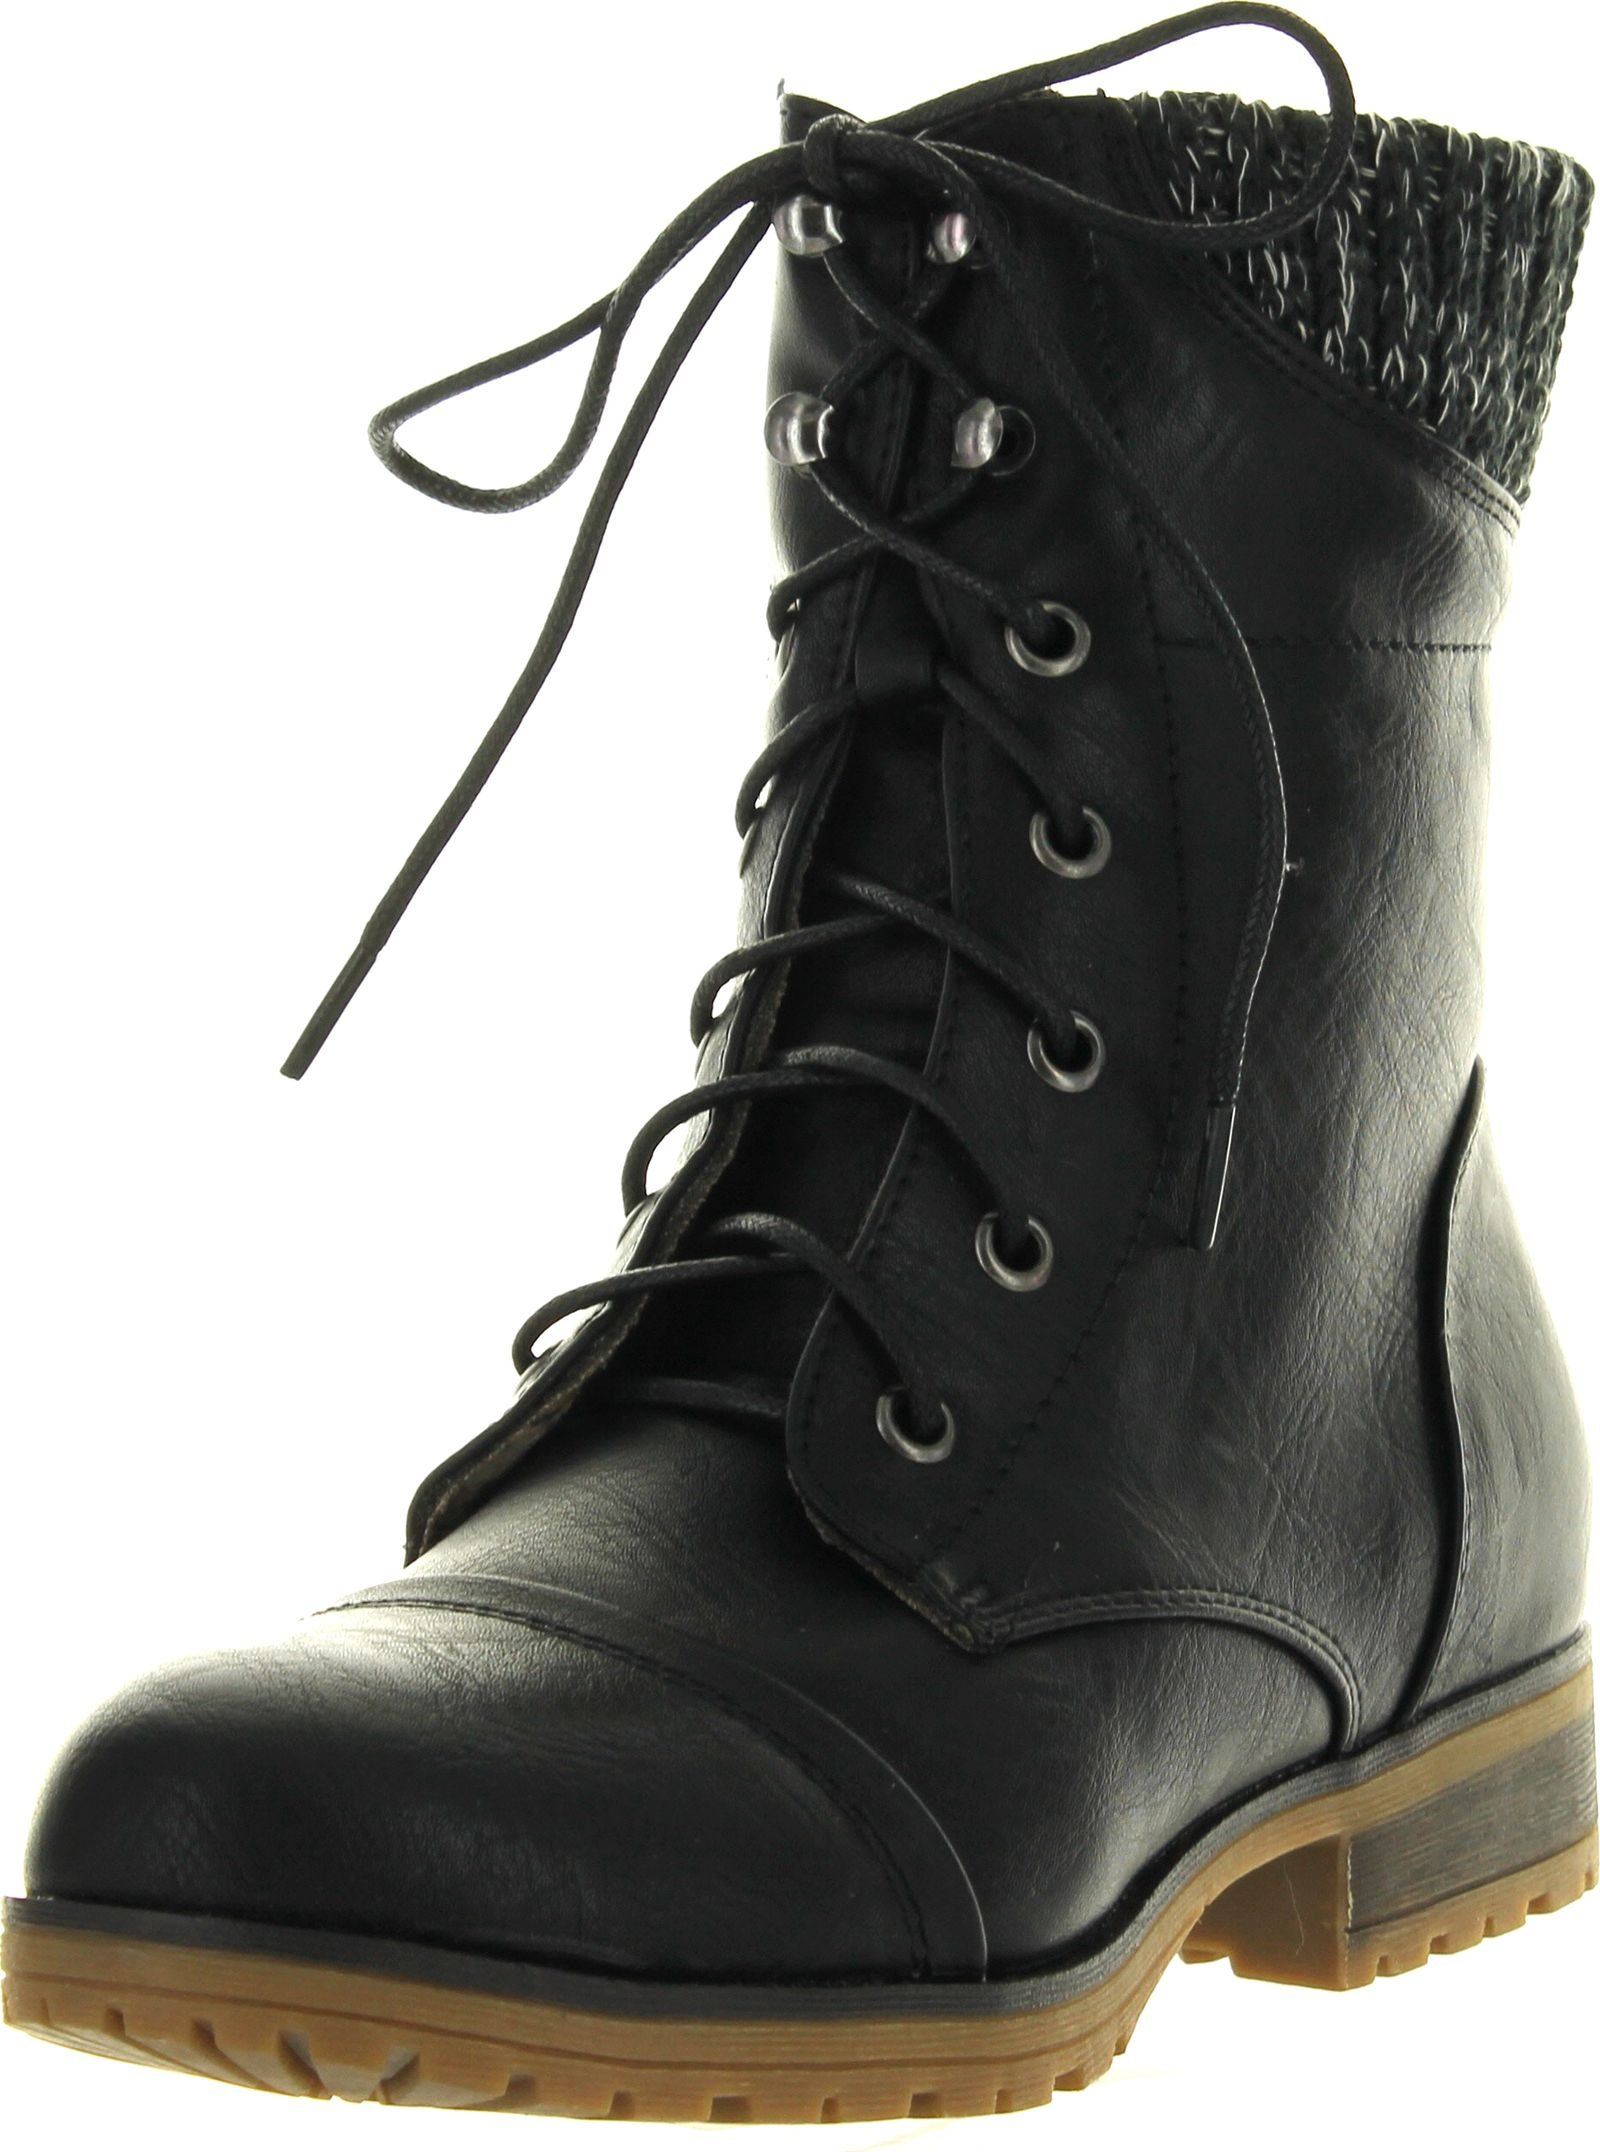 Refresh Womens Wynne-06 Combat Flat Style Lace Up Back Zipper Mid-Calf Bootie,Black,10